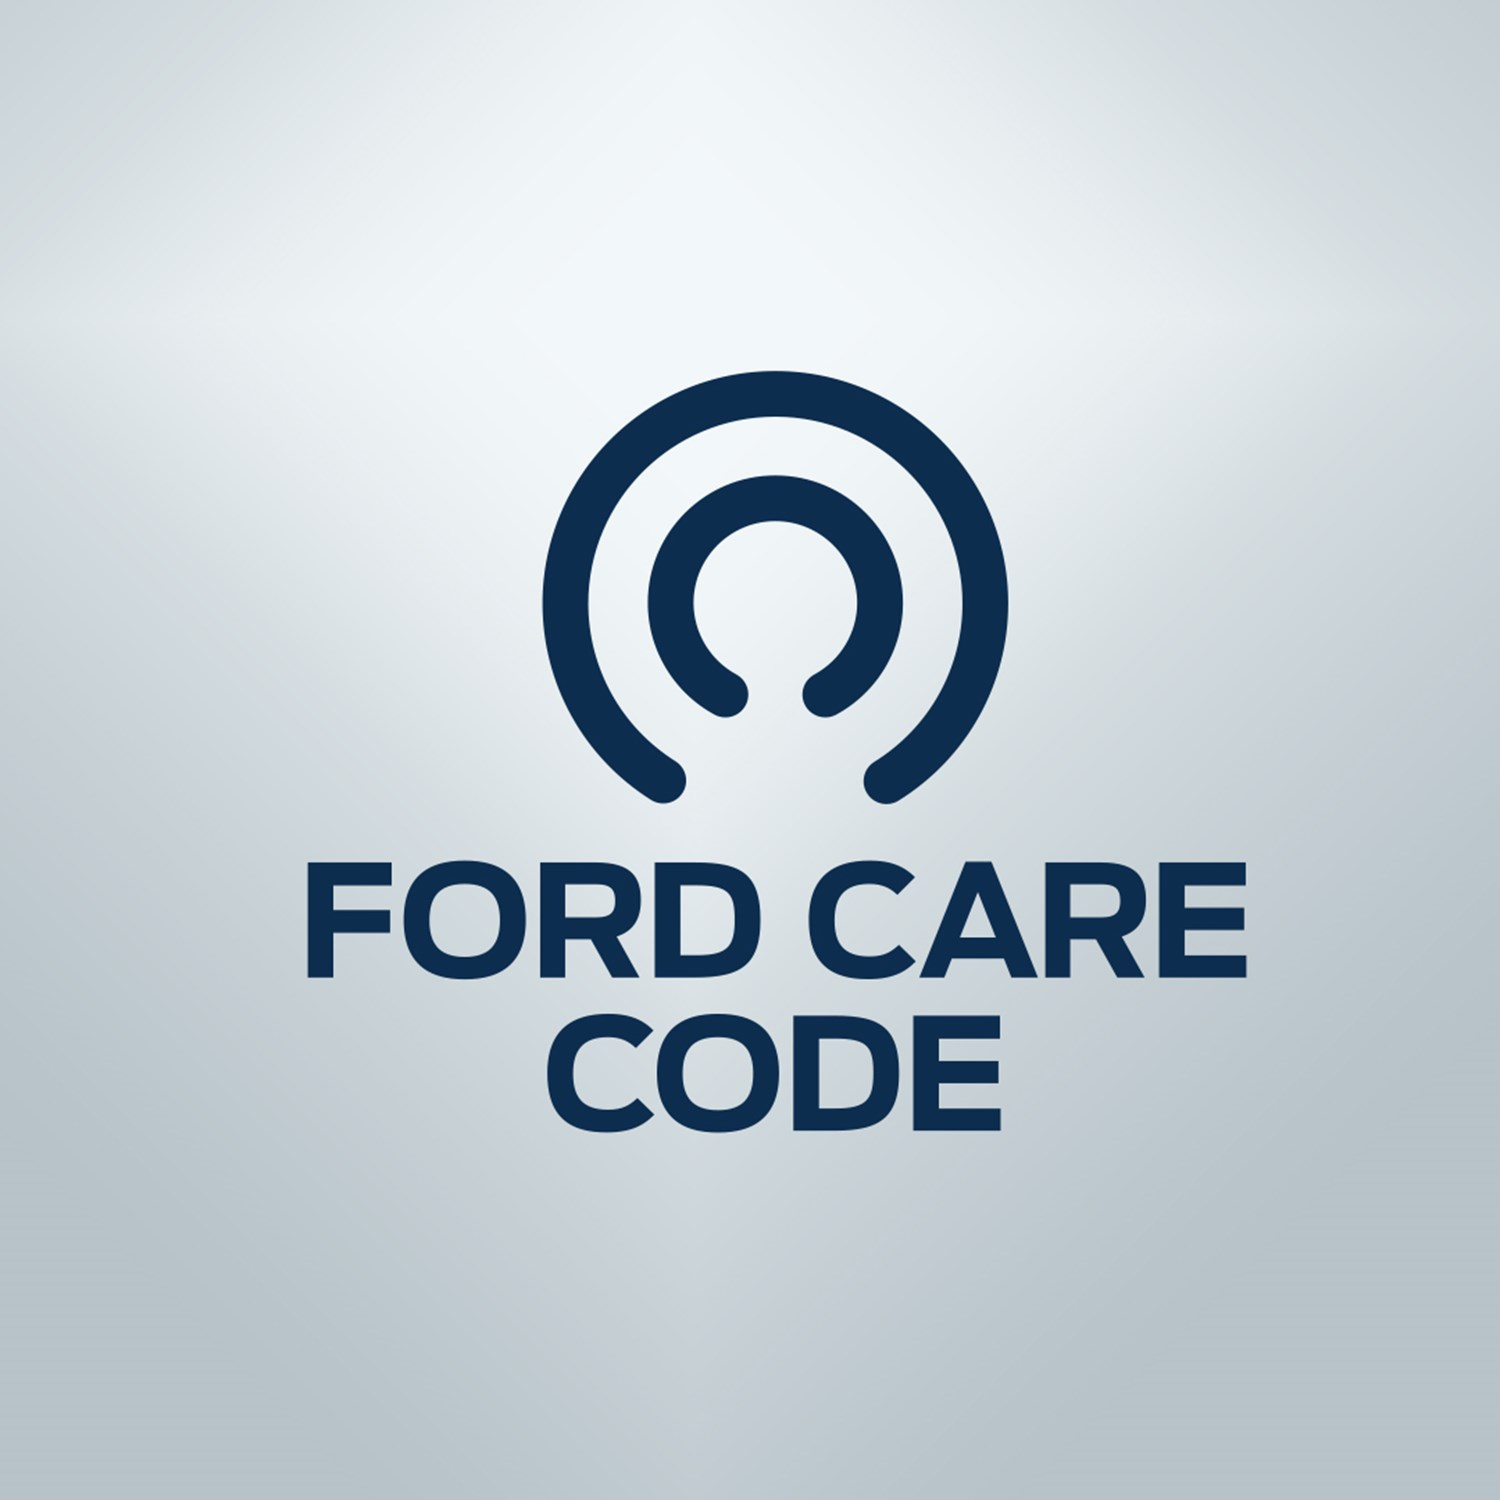 Ford Care Code